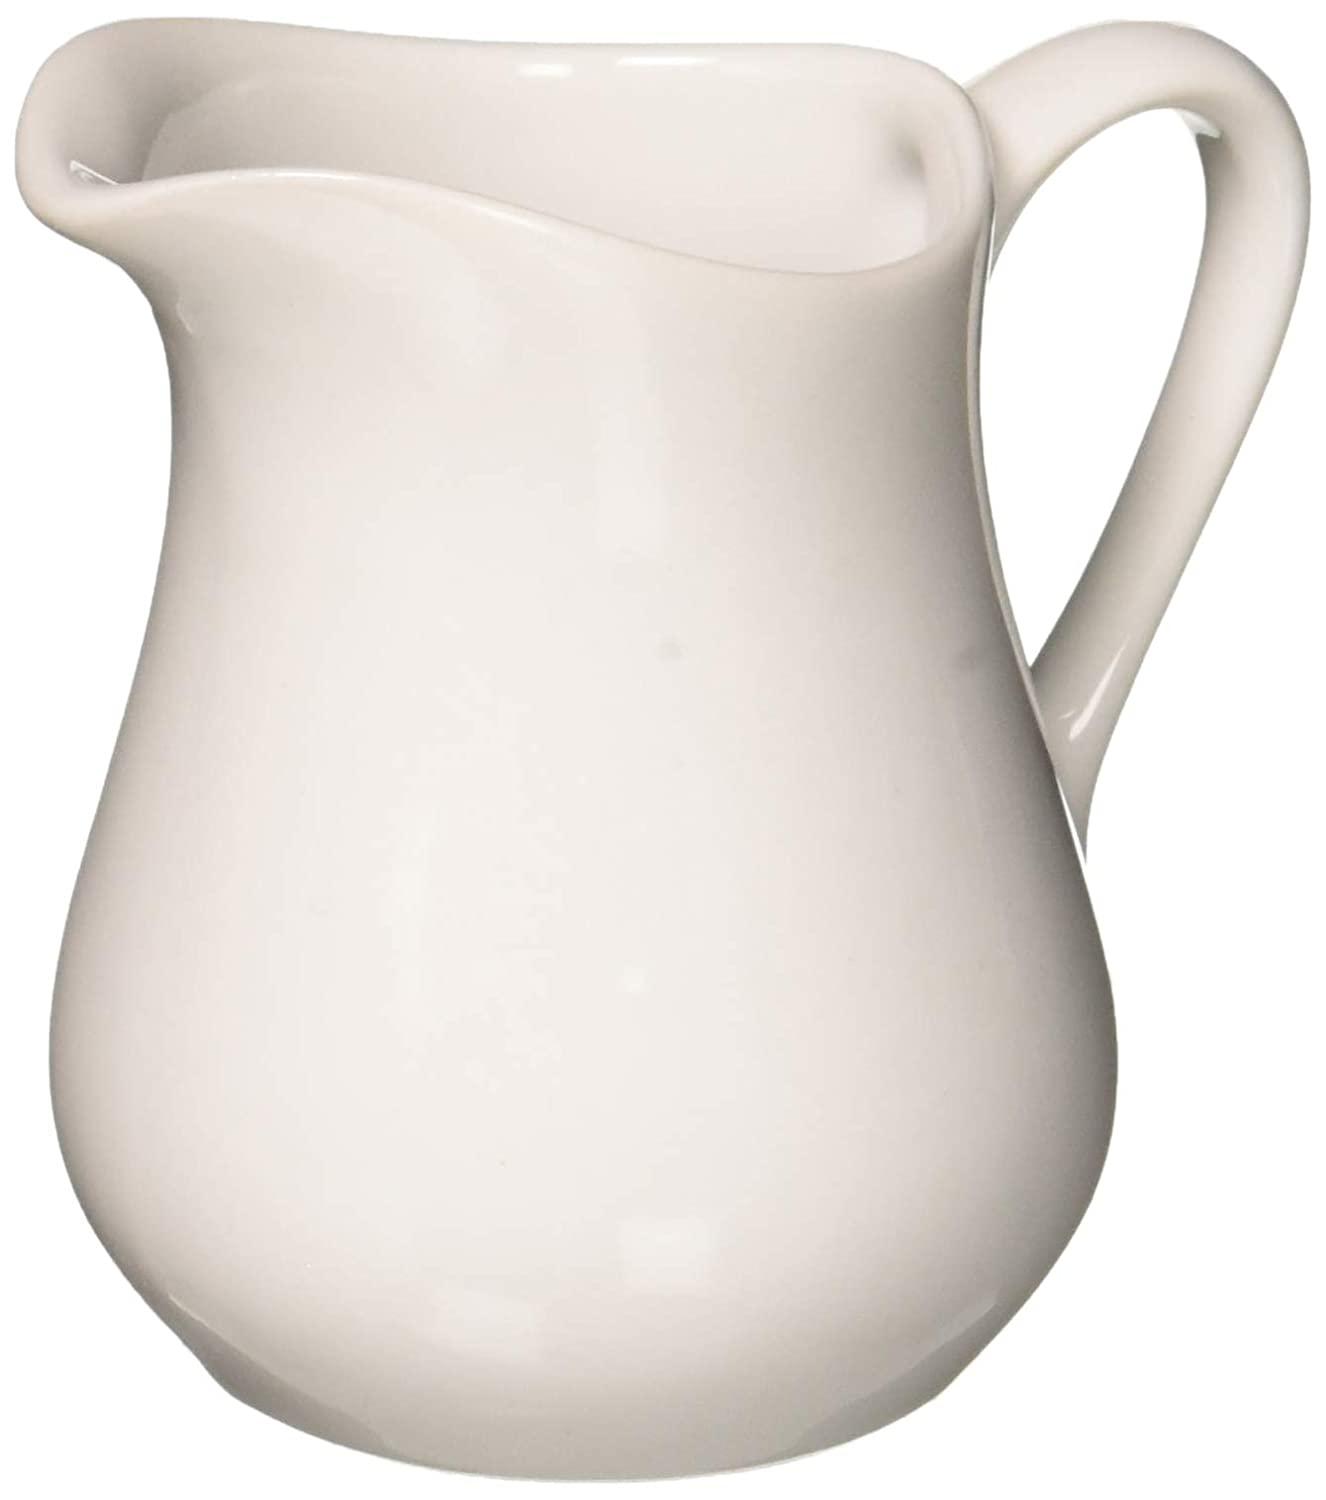 HIC Harold Import Co. NT305/2 Porcelain Creamer Pitcher, 4 Ounce, Set/2